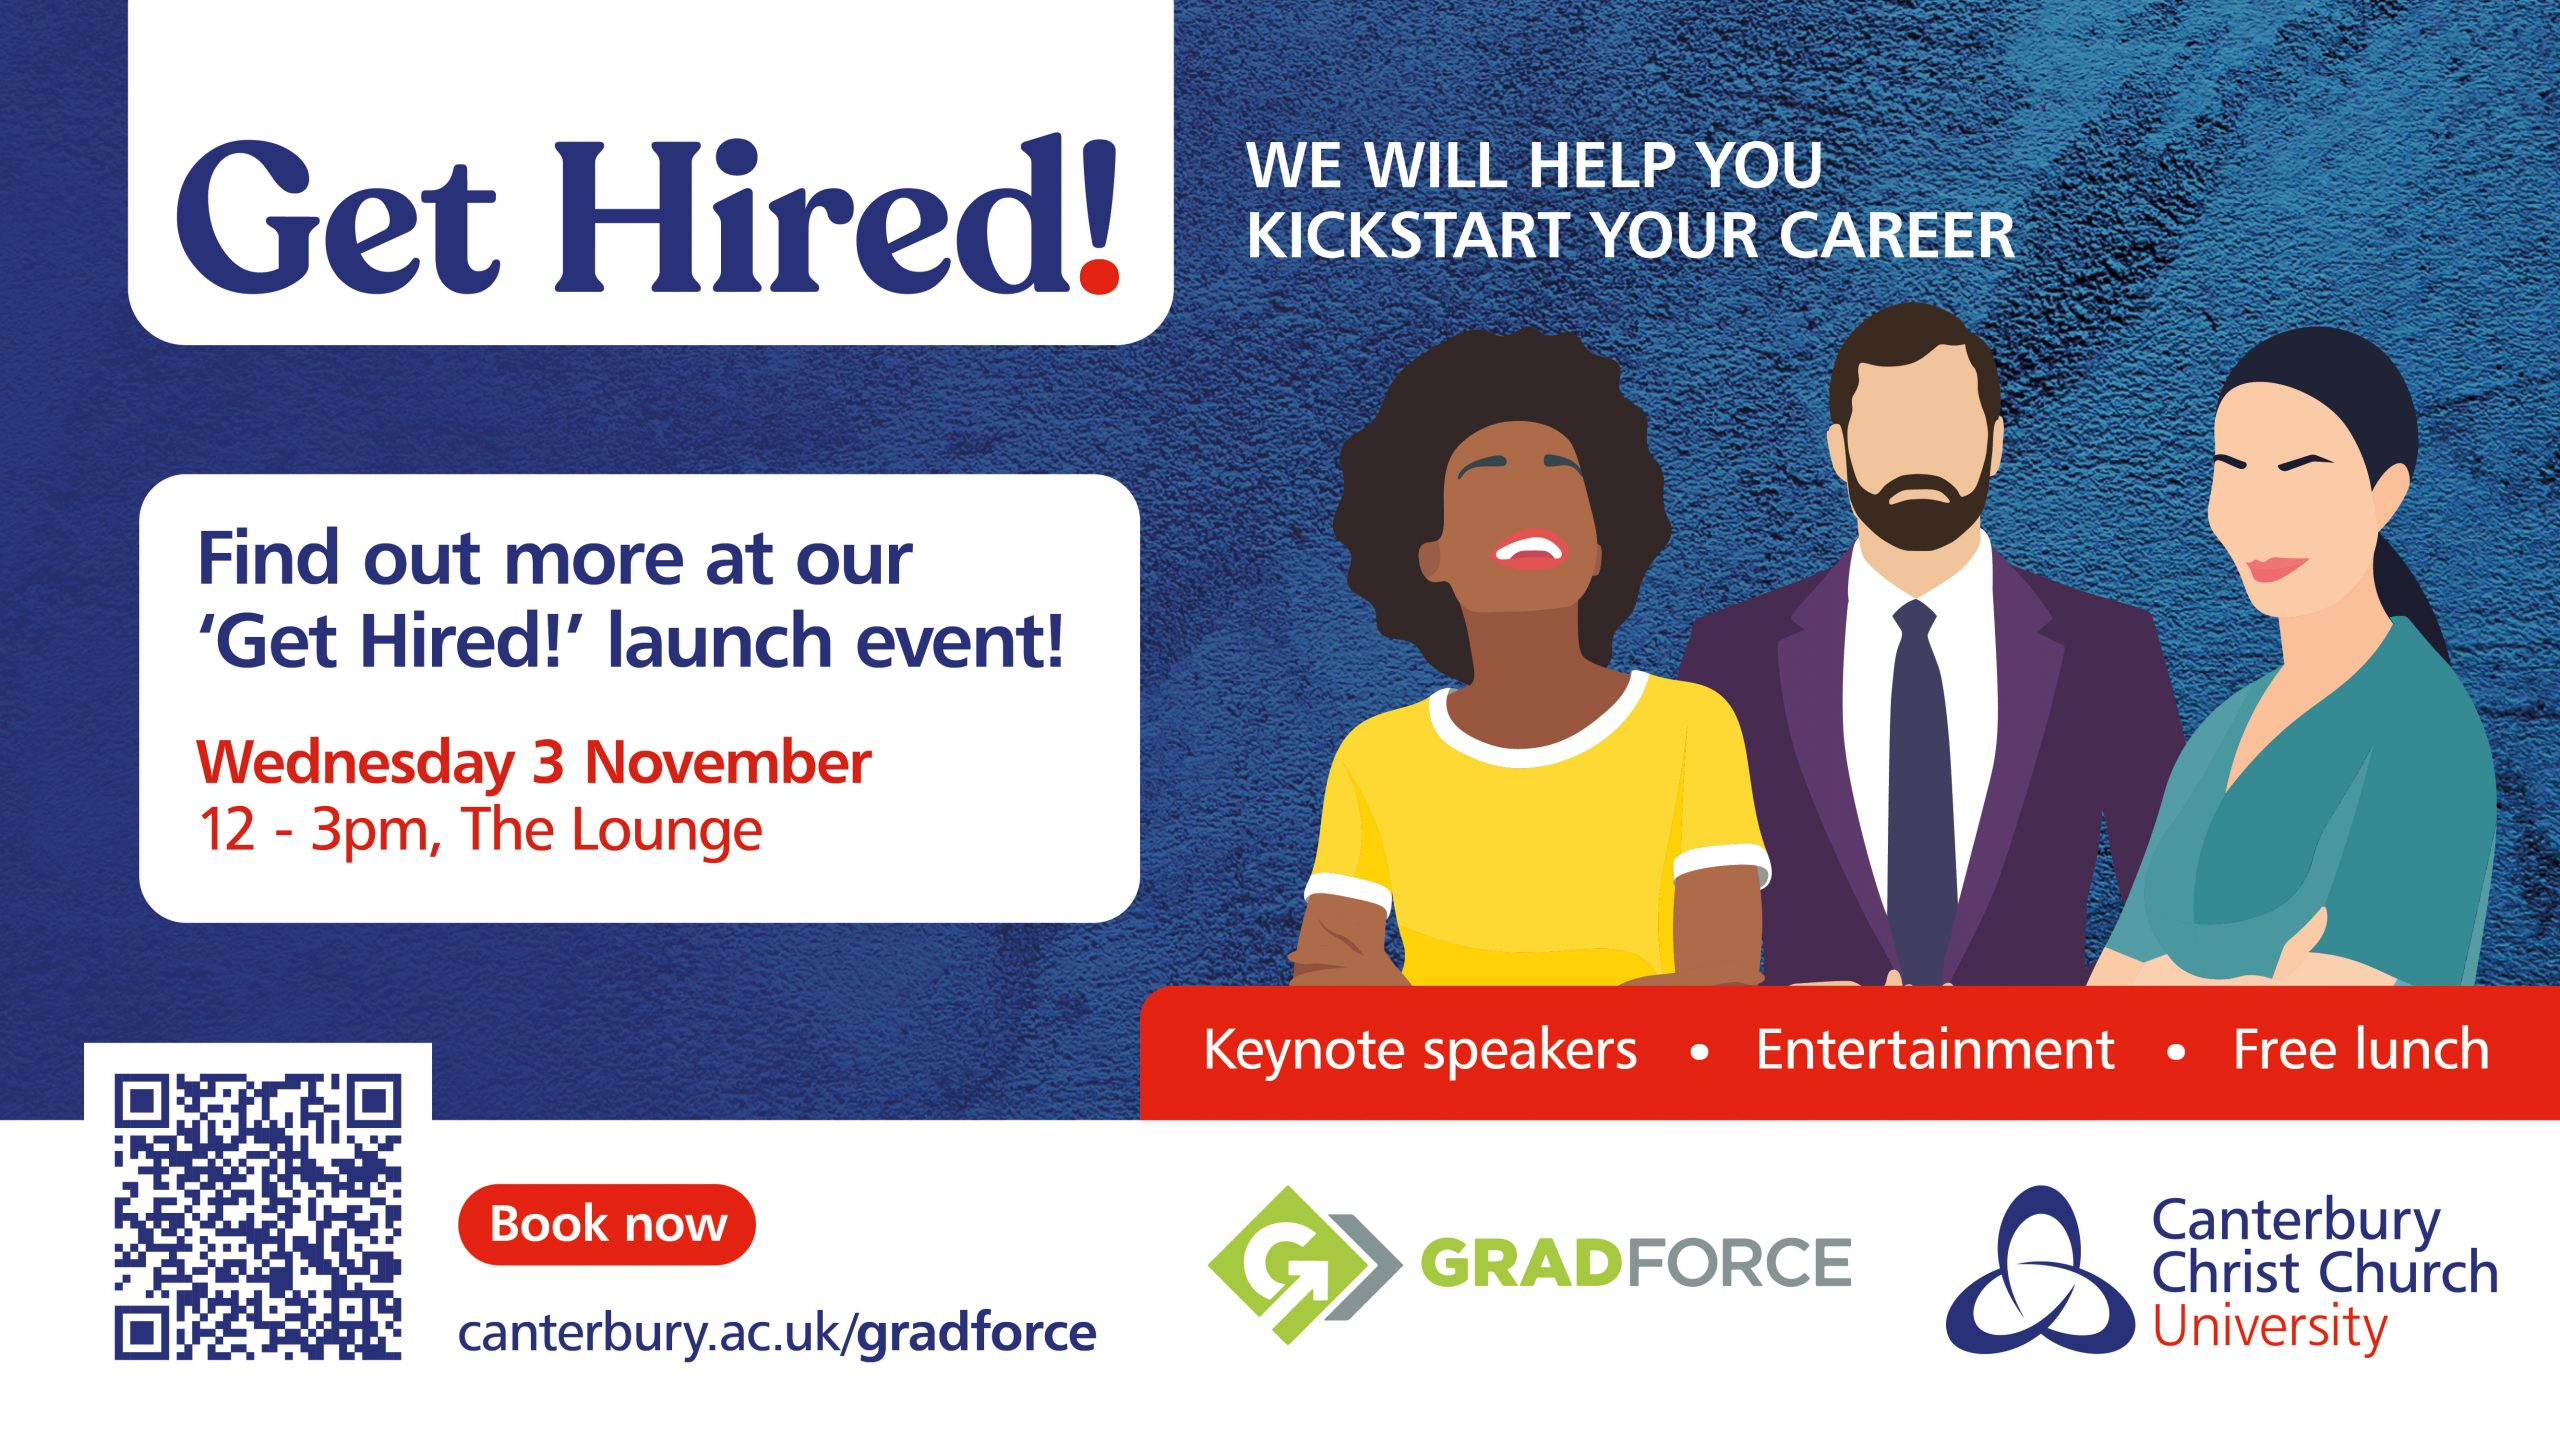 Final year students are invited to the Gradforce launch event on 3 November